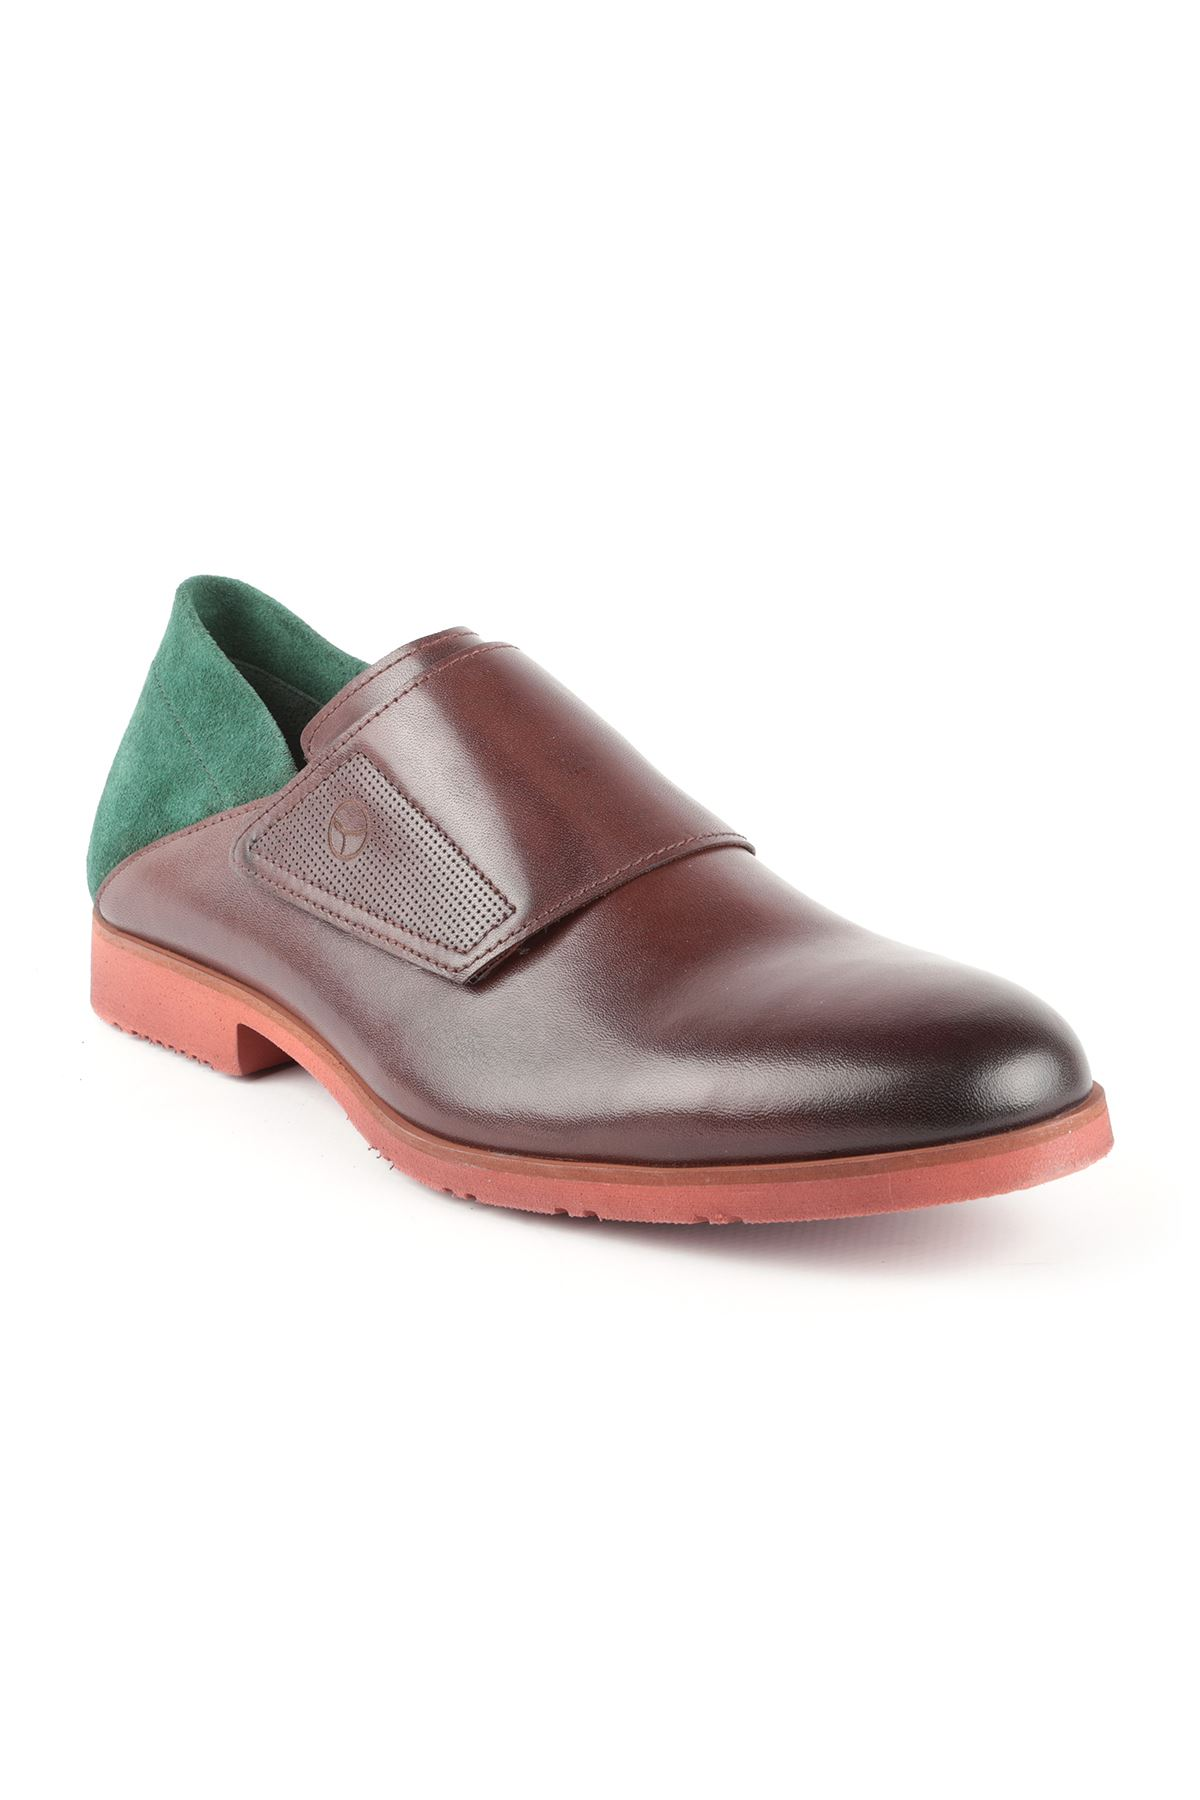 Libero T1432 Claret Red Casual Shoes